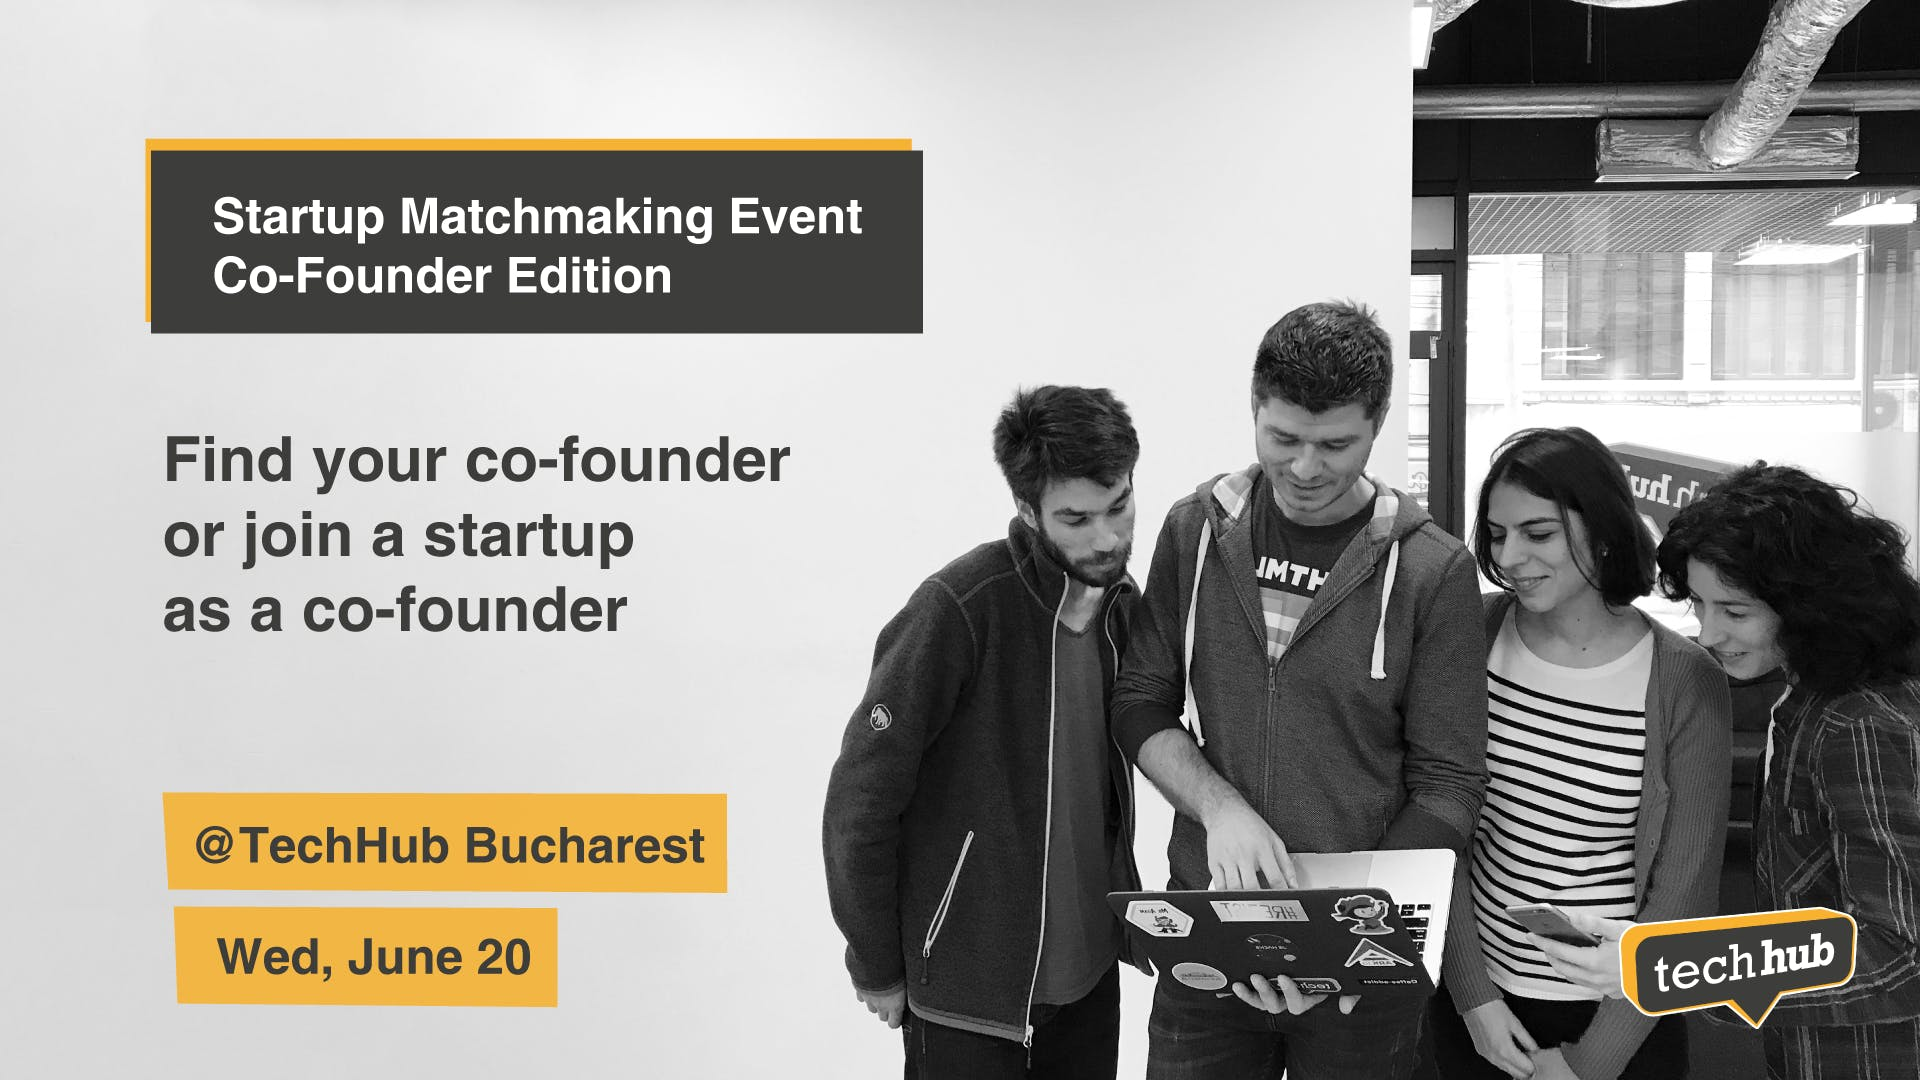 Startup Matchmaking - Co-founder edition